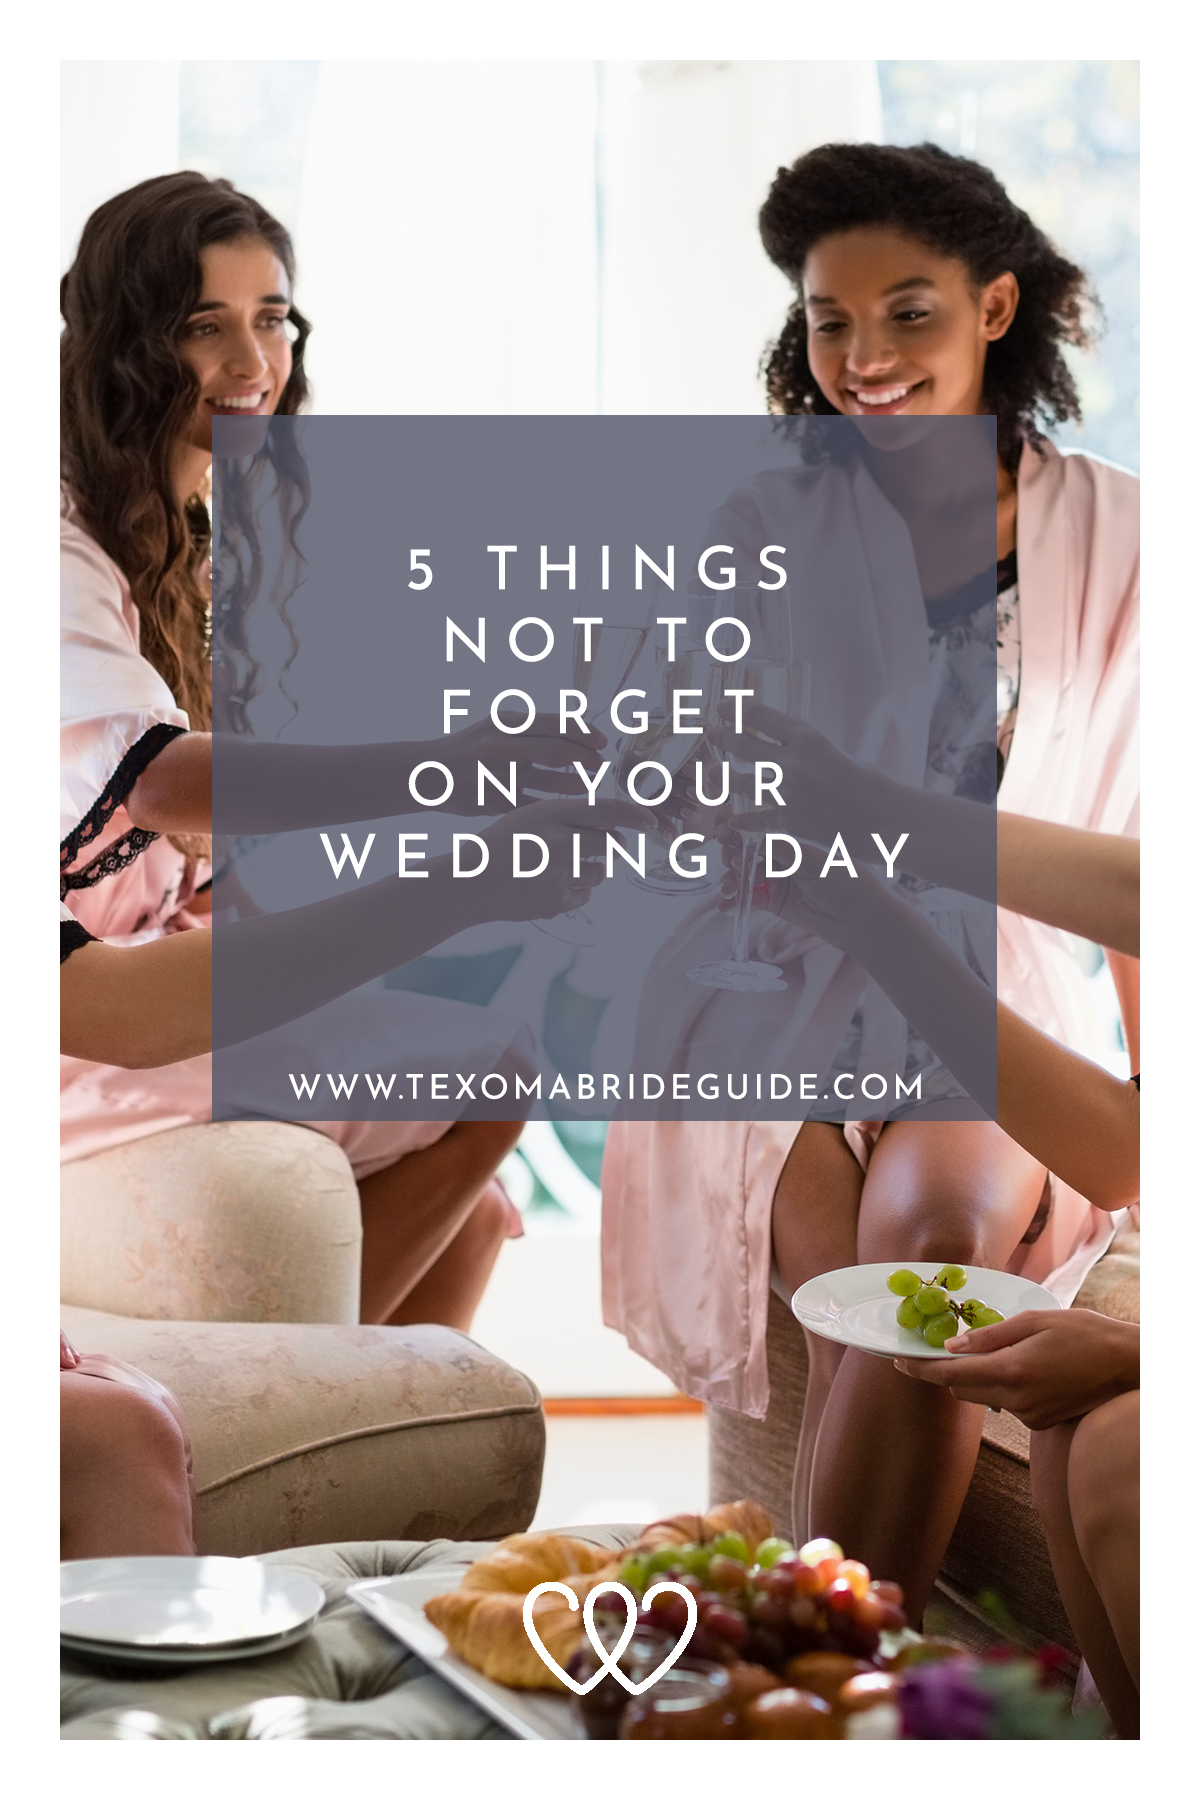 5 Things Not to Forget on Your Wedding Day   Texoma Bride Guide Blog